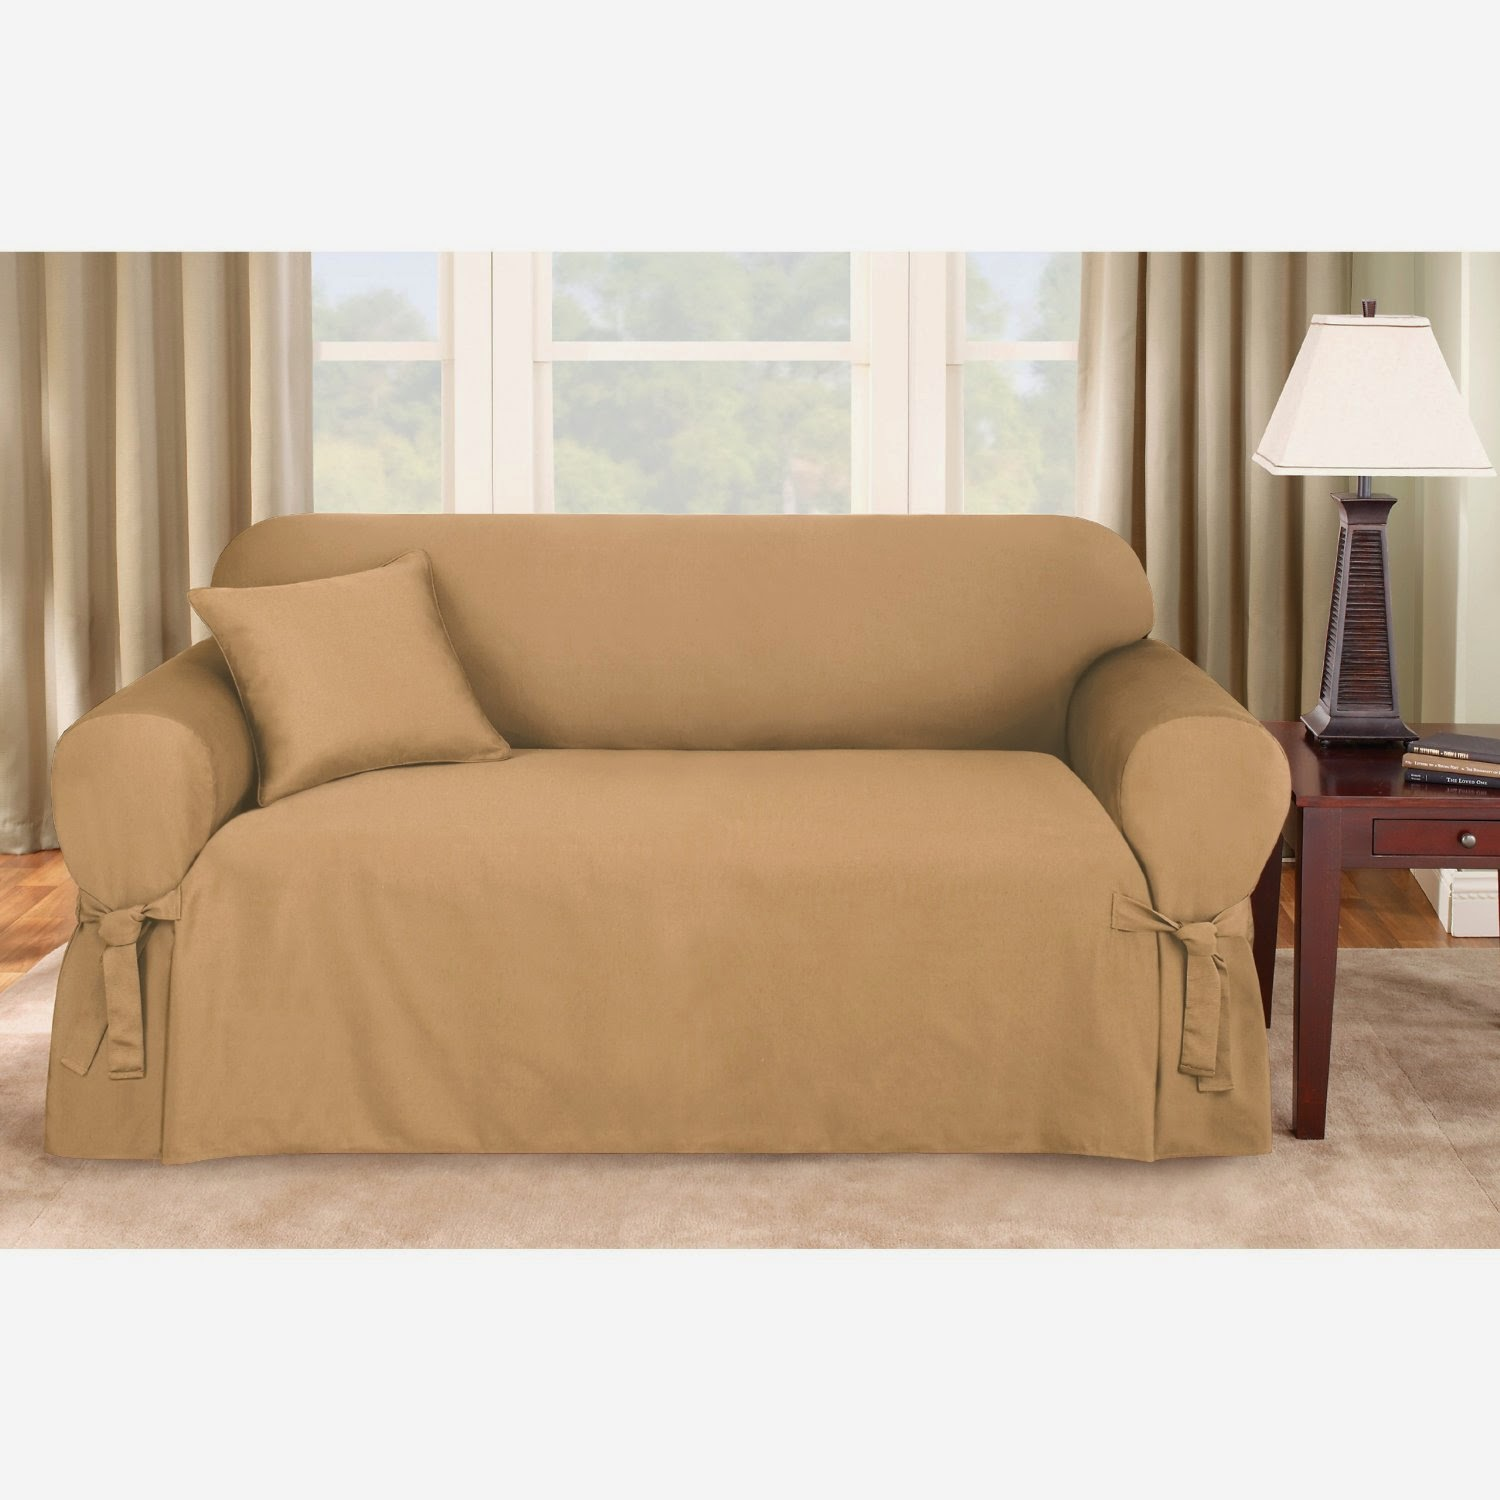 one arm sofa slipcover blue leather sofas couch covers